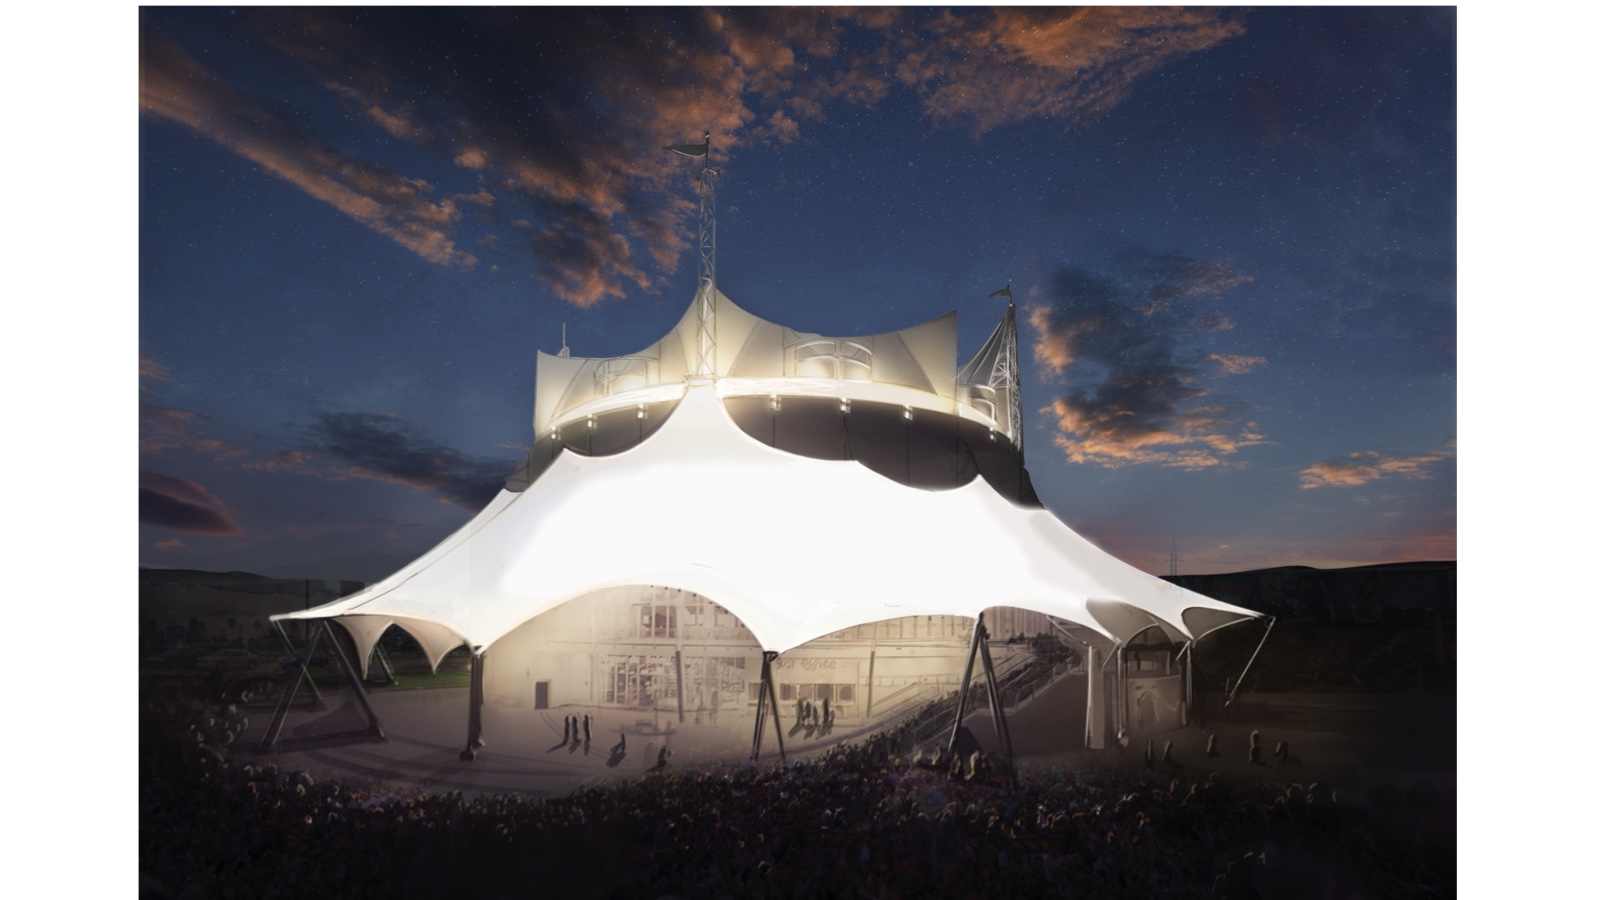 Tickets on Sale Now for New Cirque du Soleil Show Set to Premiere in Spring 2020 at Disney Springs